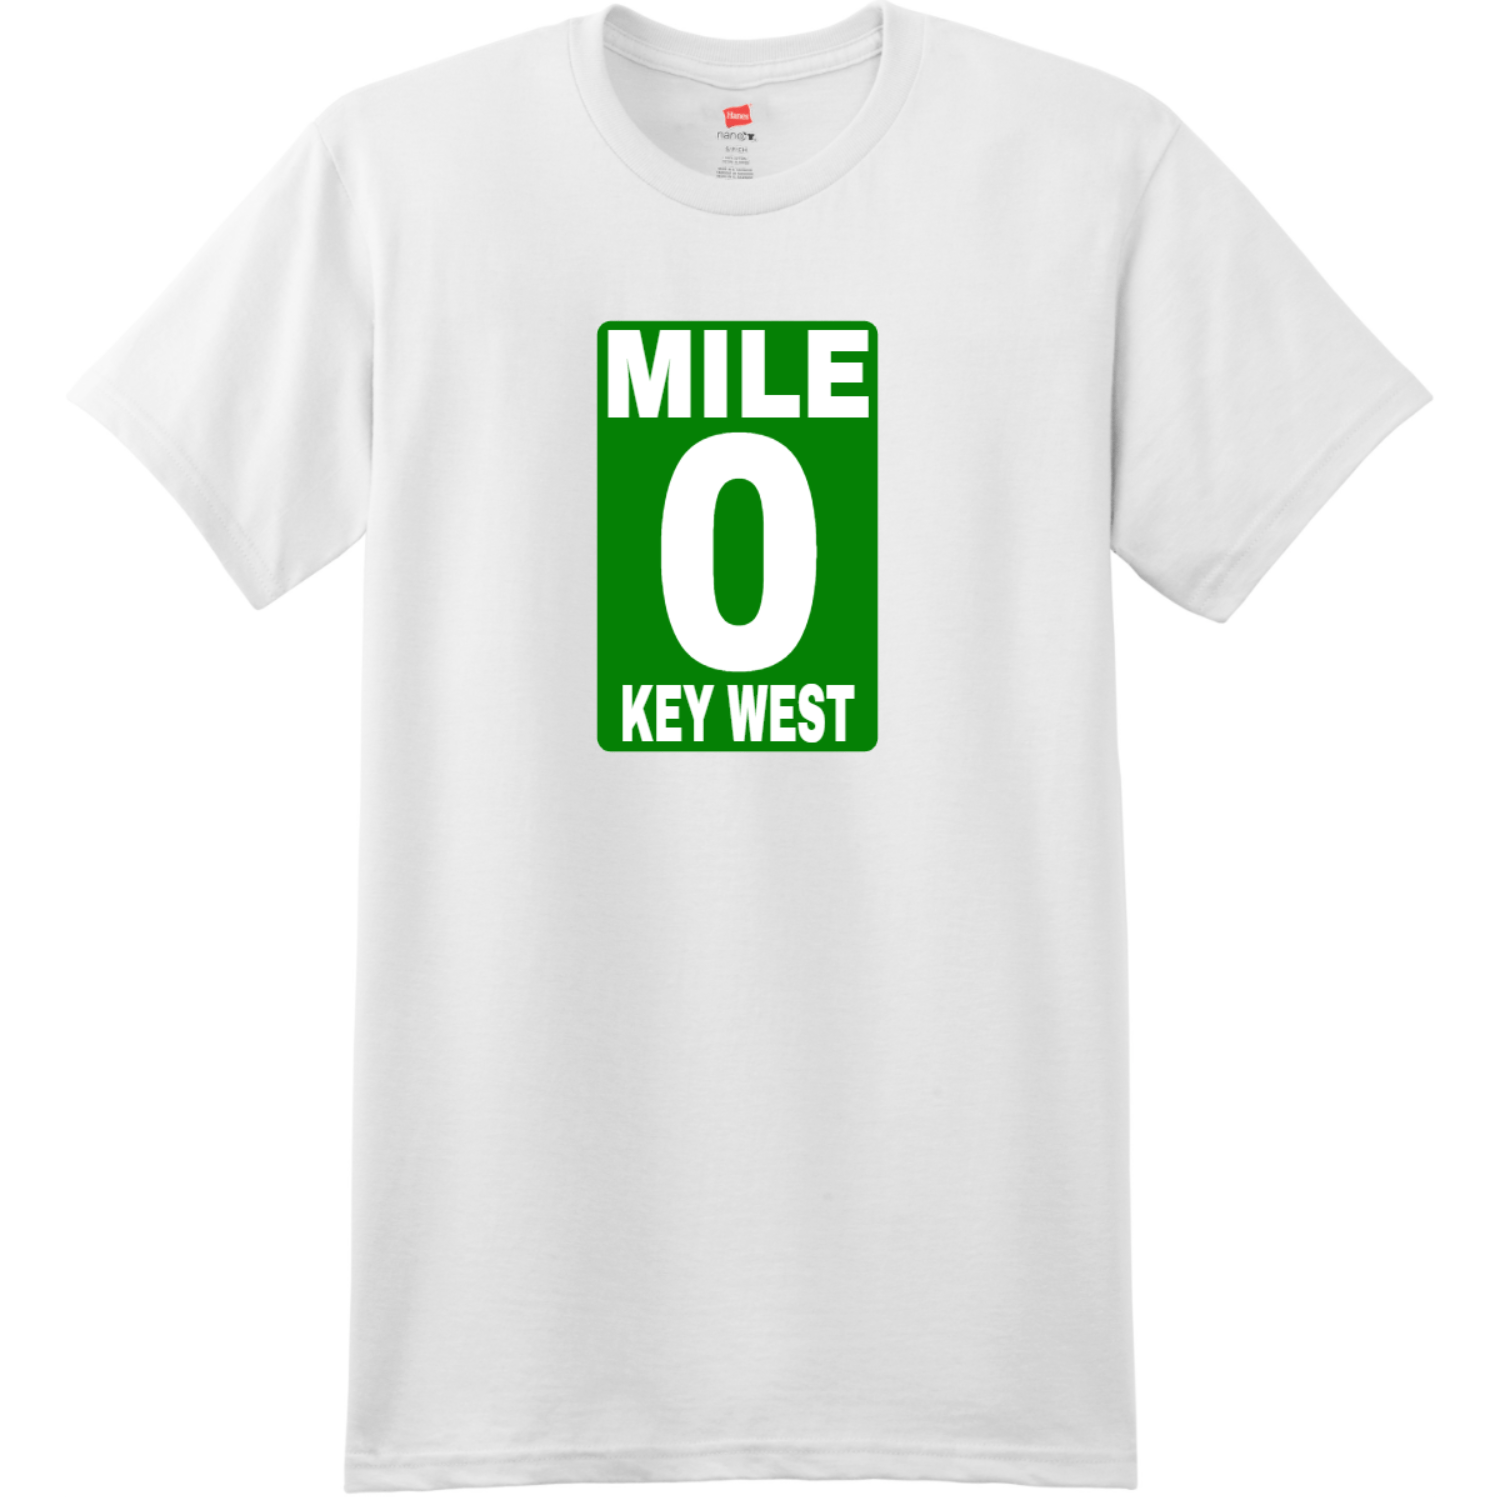 Mile 0 Key West T Shirt White Hanes Nano 4980 Ringspun Cotton T Shirt